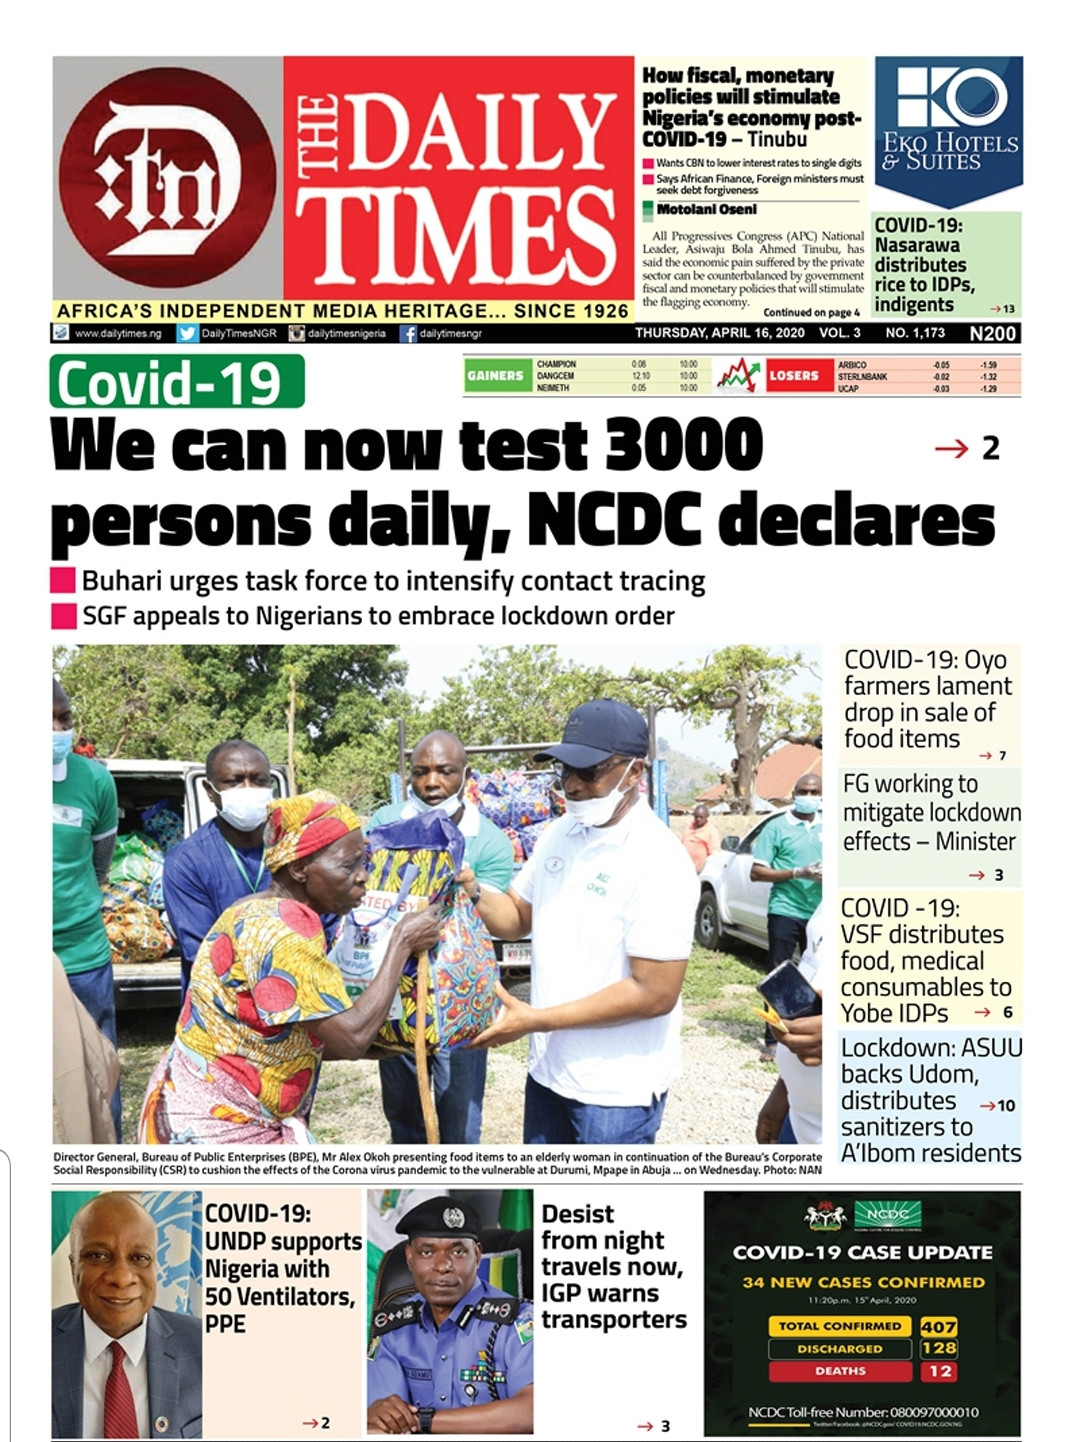 Daily Times Nigeria Top four Stories Today..